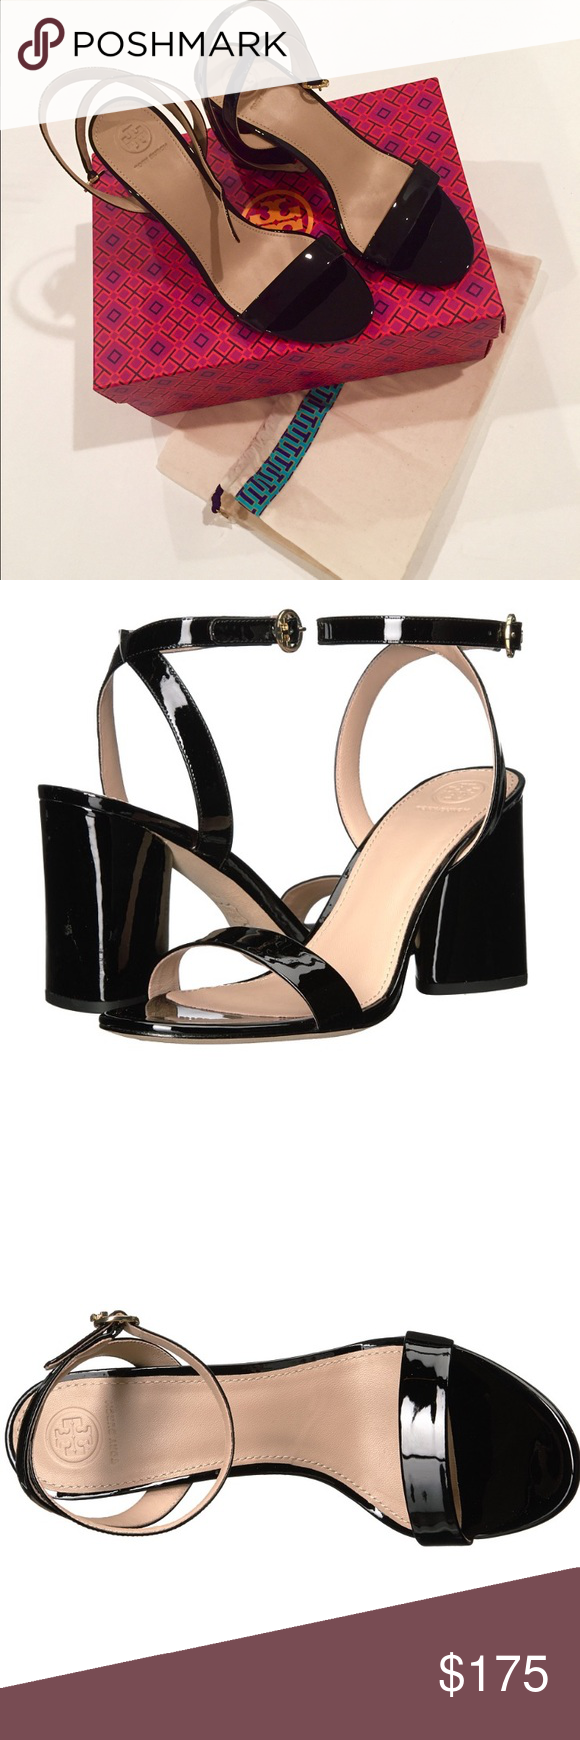 071f1cb51ae Tory Burch® Elizabeth 2 85mm Sandal Keep your look pristine for any  occasion with the